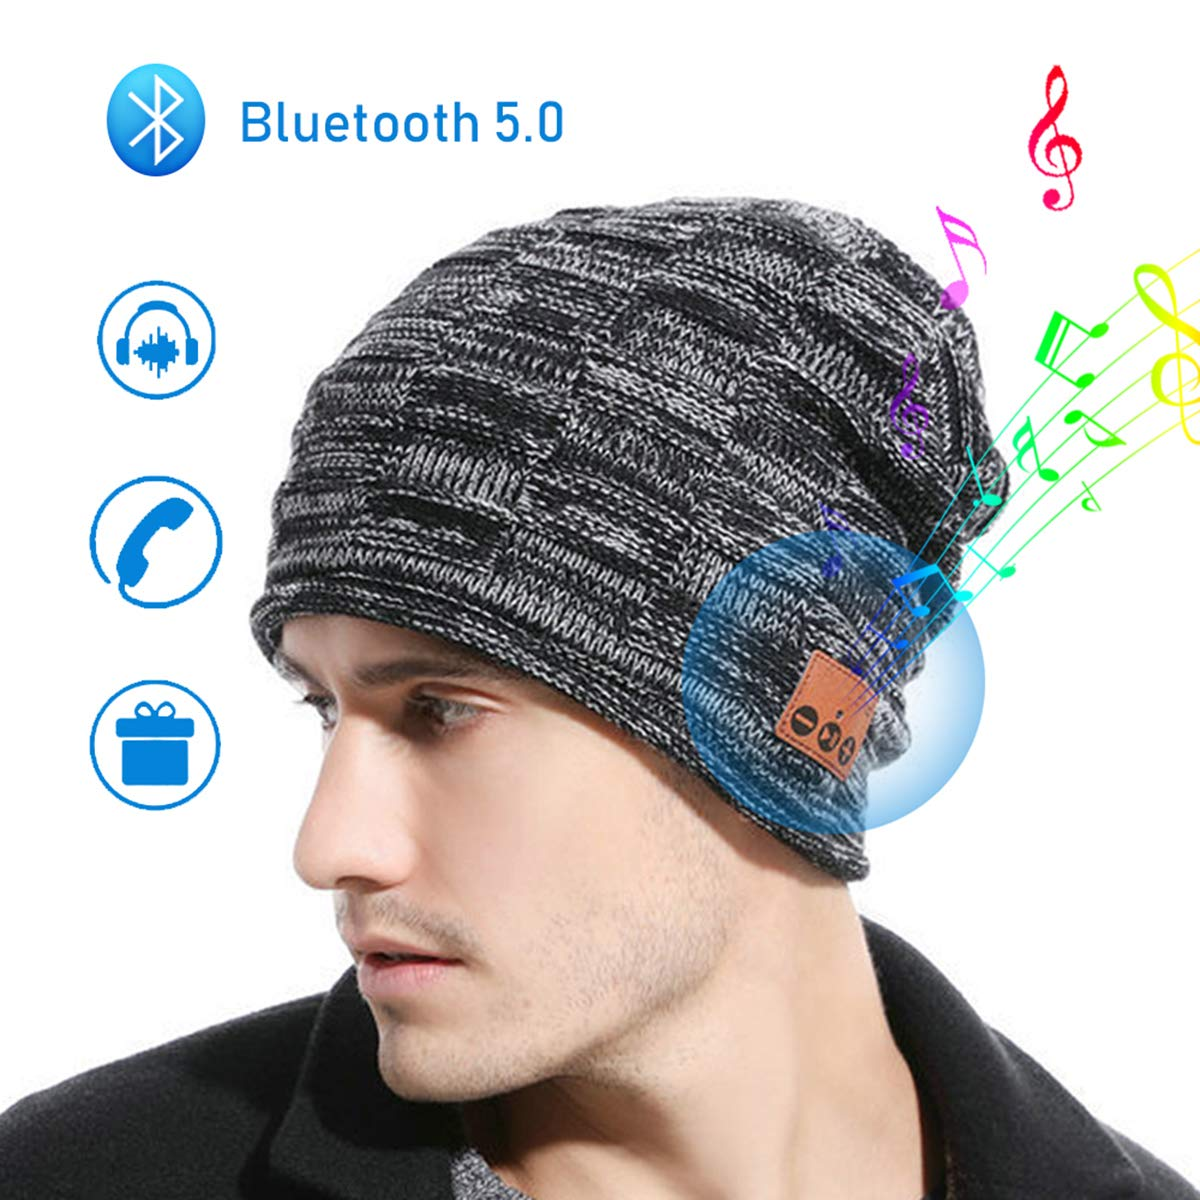 JIANYIJIA Music Hat Bluetooth Headset Hat Soft Warm Knitted Hat with Stereo Speaker Headphone Micro Phone Hands Free for Receiving Calls Playing Music Compatible for All Bluetooth Devices